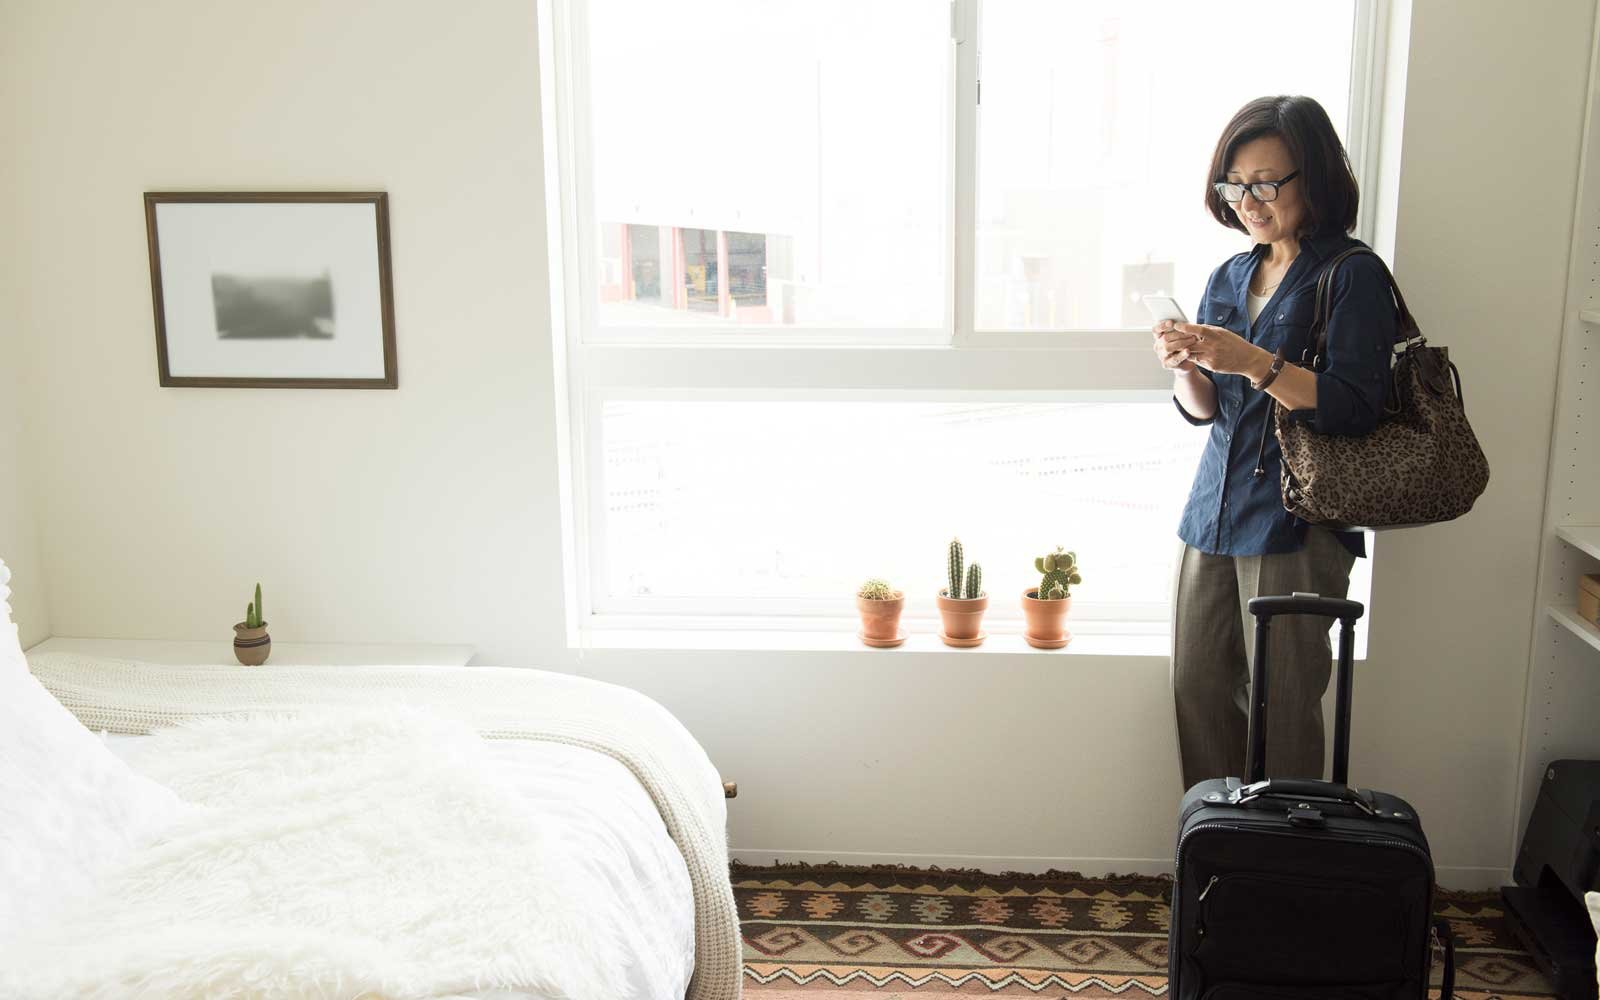 Booking hotel rooms